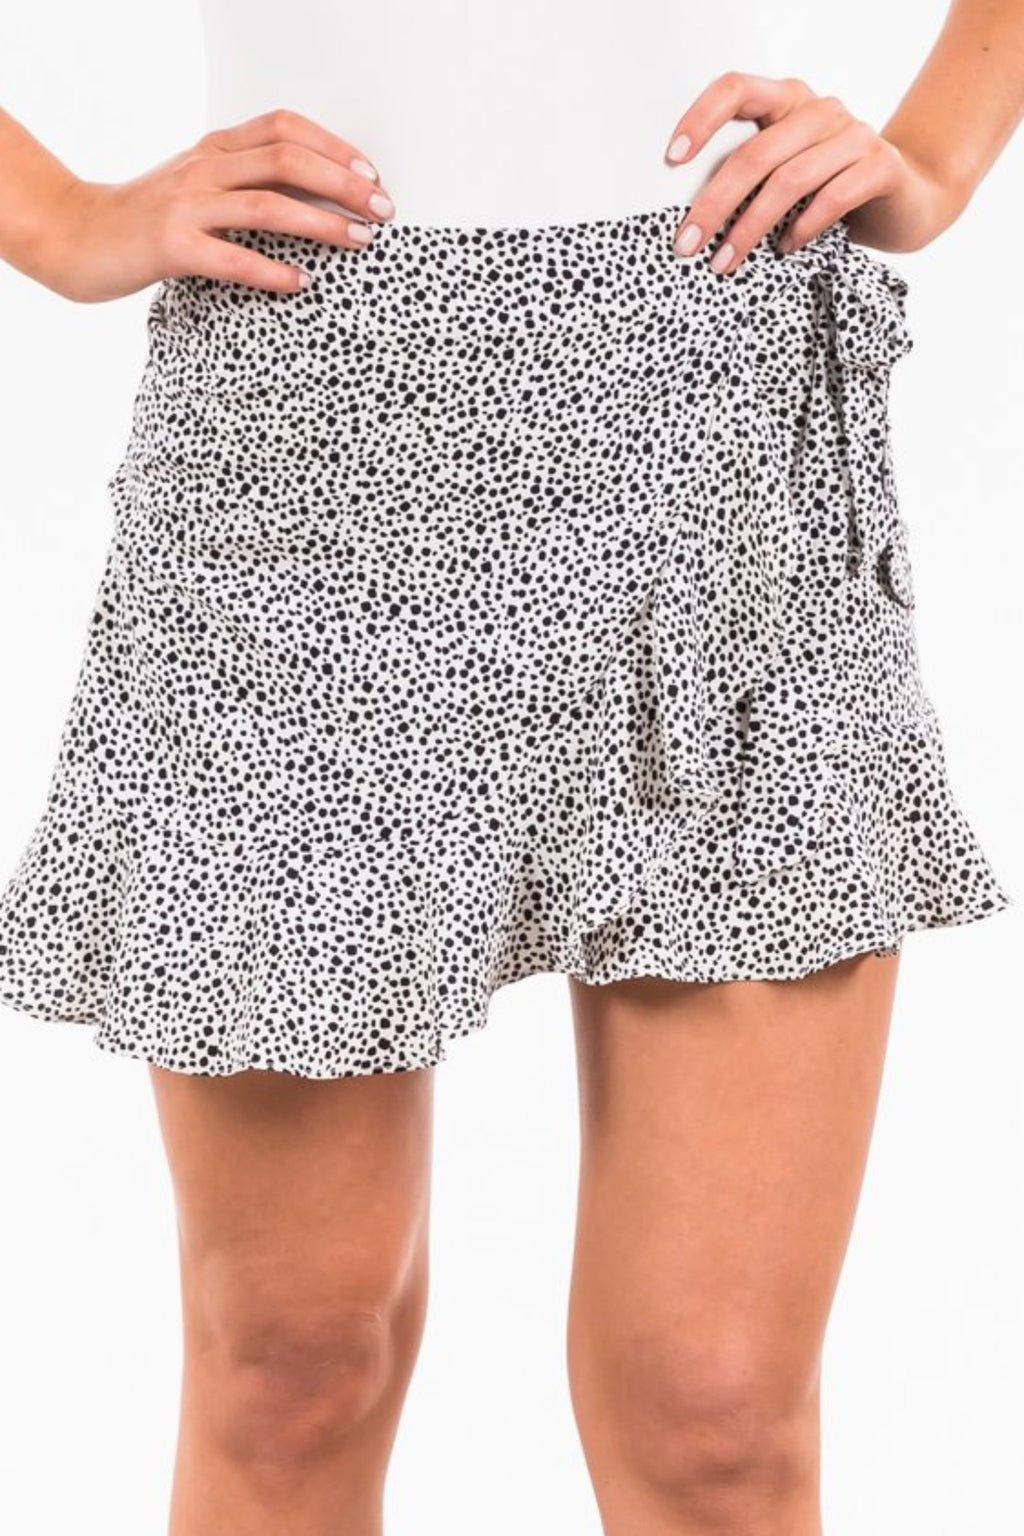 Elise Skirt - White / Black